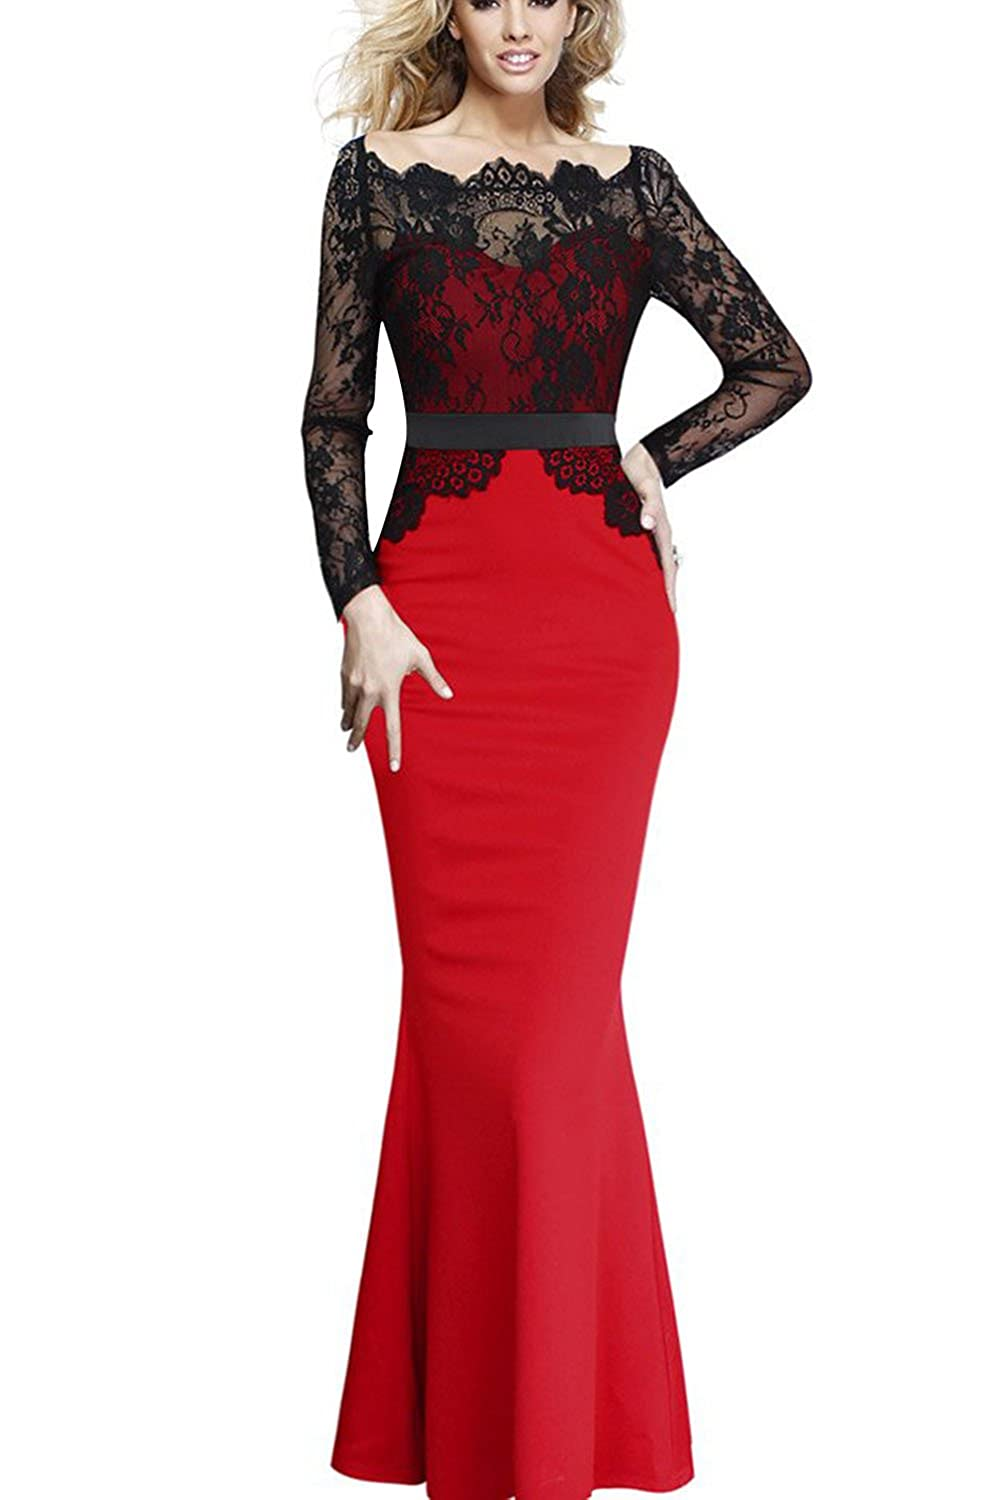 Fordestiny Damen Spitzenkleid Brautjungfer Cocktailkleid Lace ...